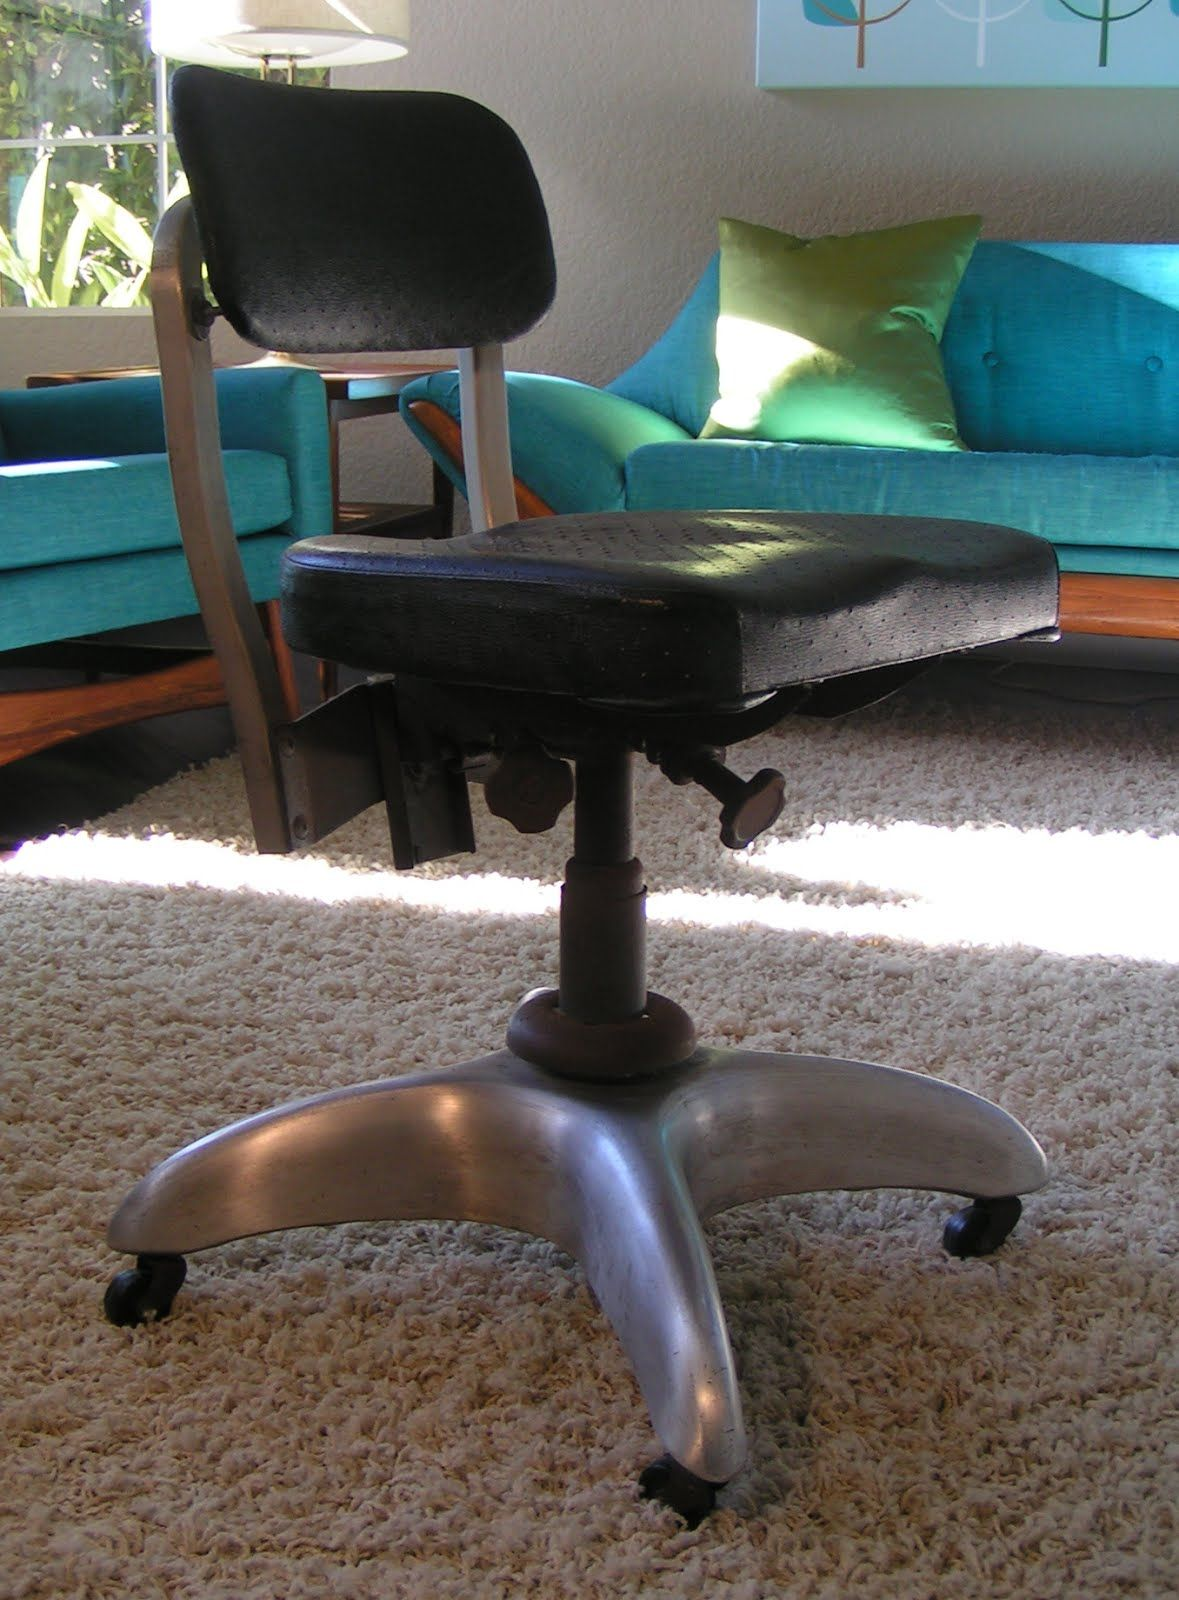 Uncomfortable, heavy and squeaky hand-me-down office chair.  Cool